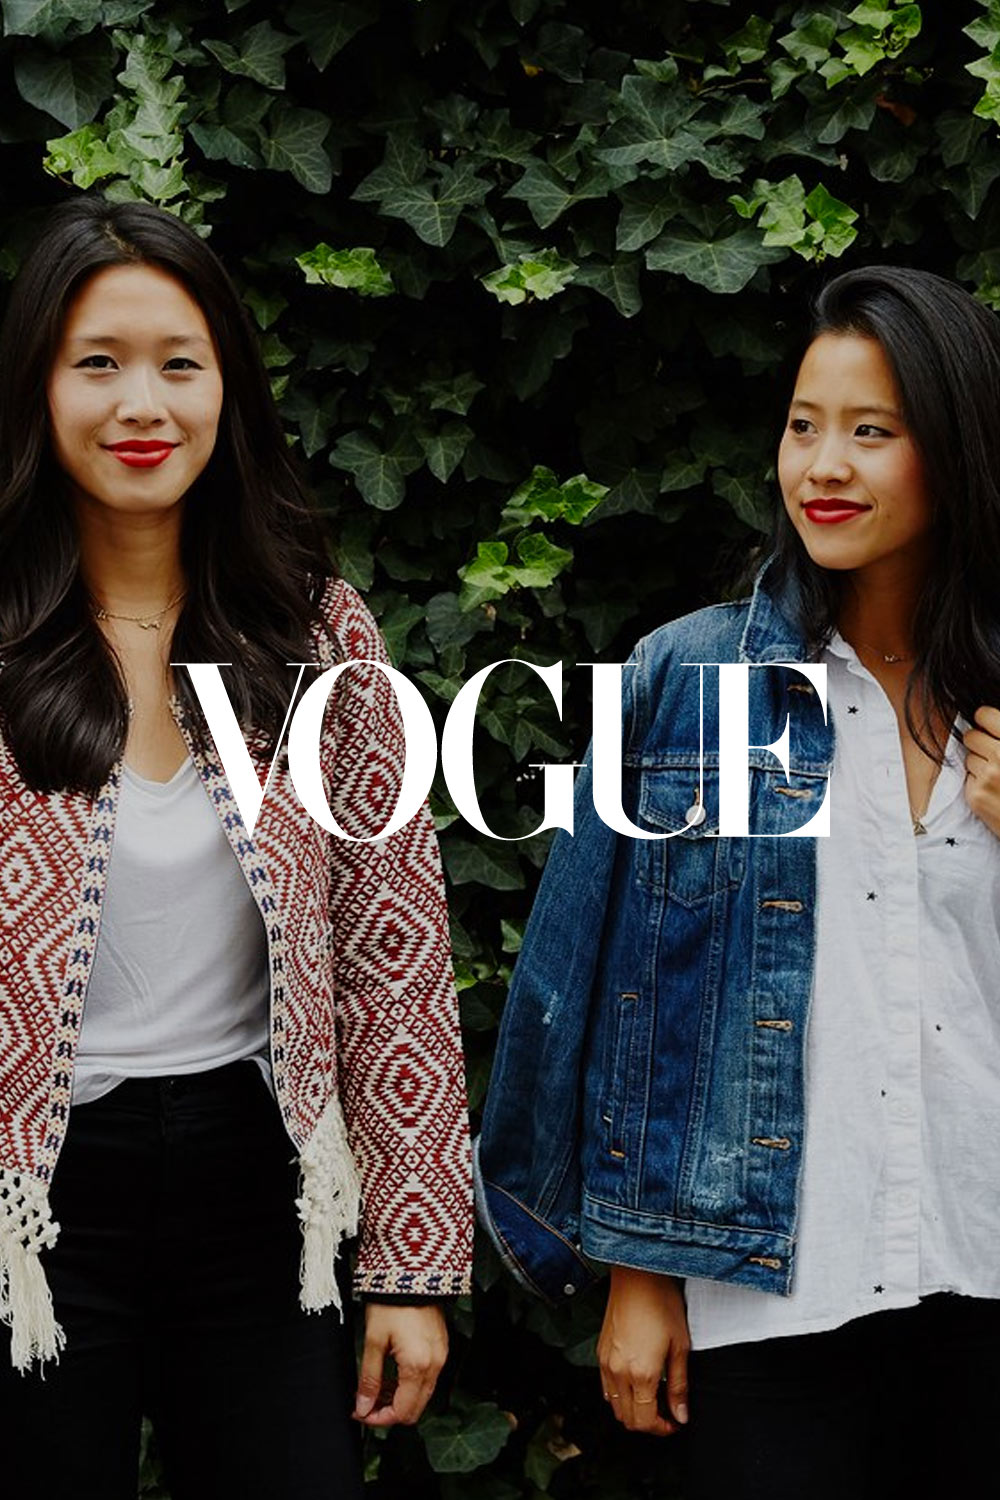 Meet the Workout-Savvy Sisters Behind New York's Most Stylish Dumpling Shops